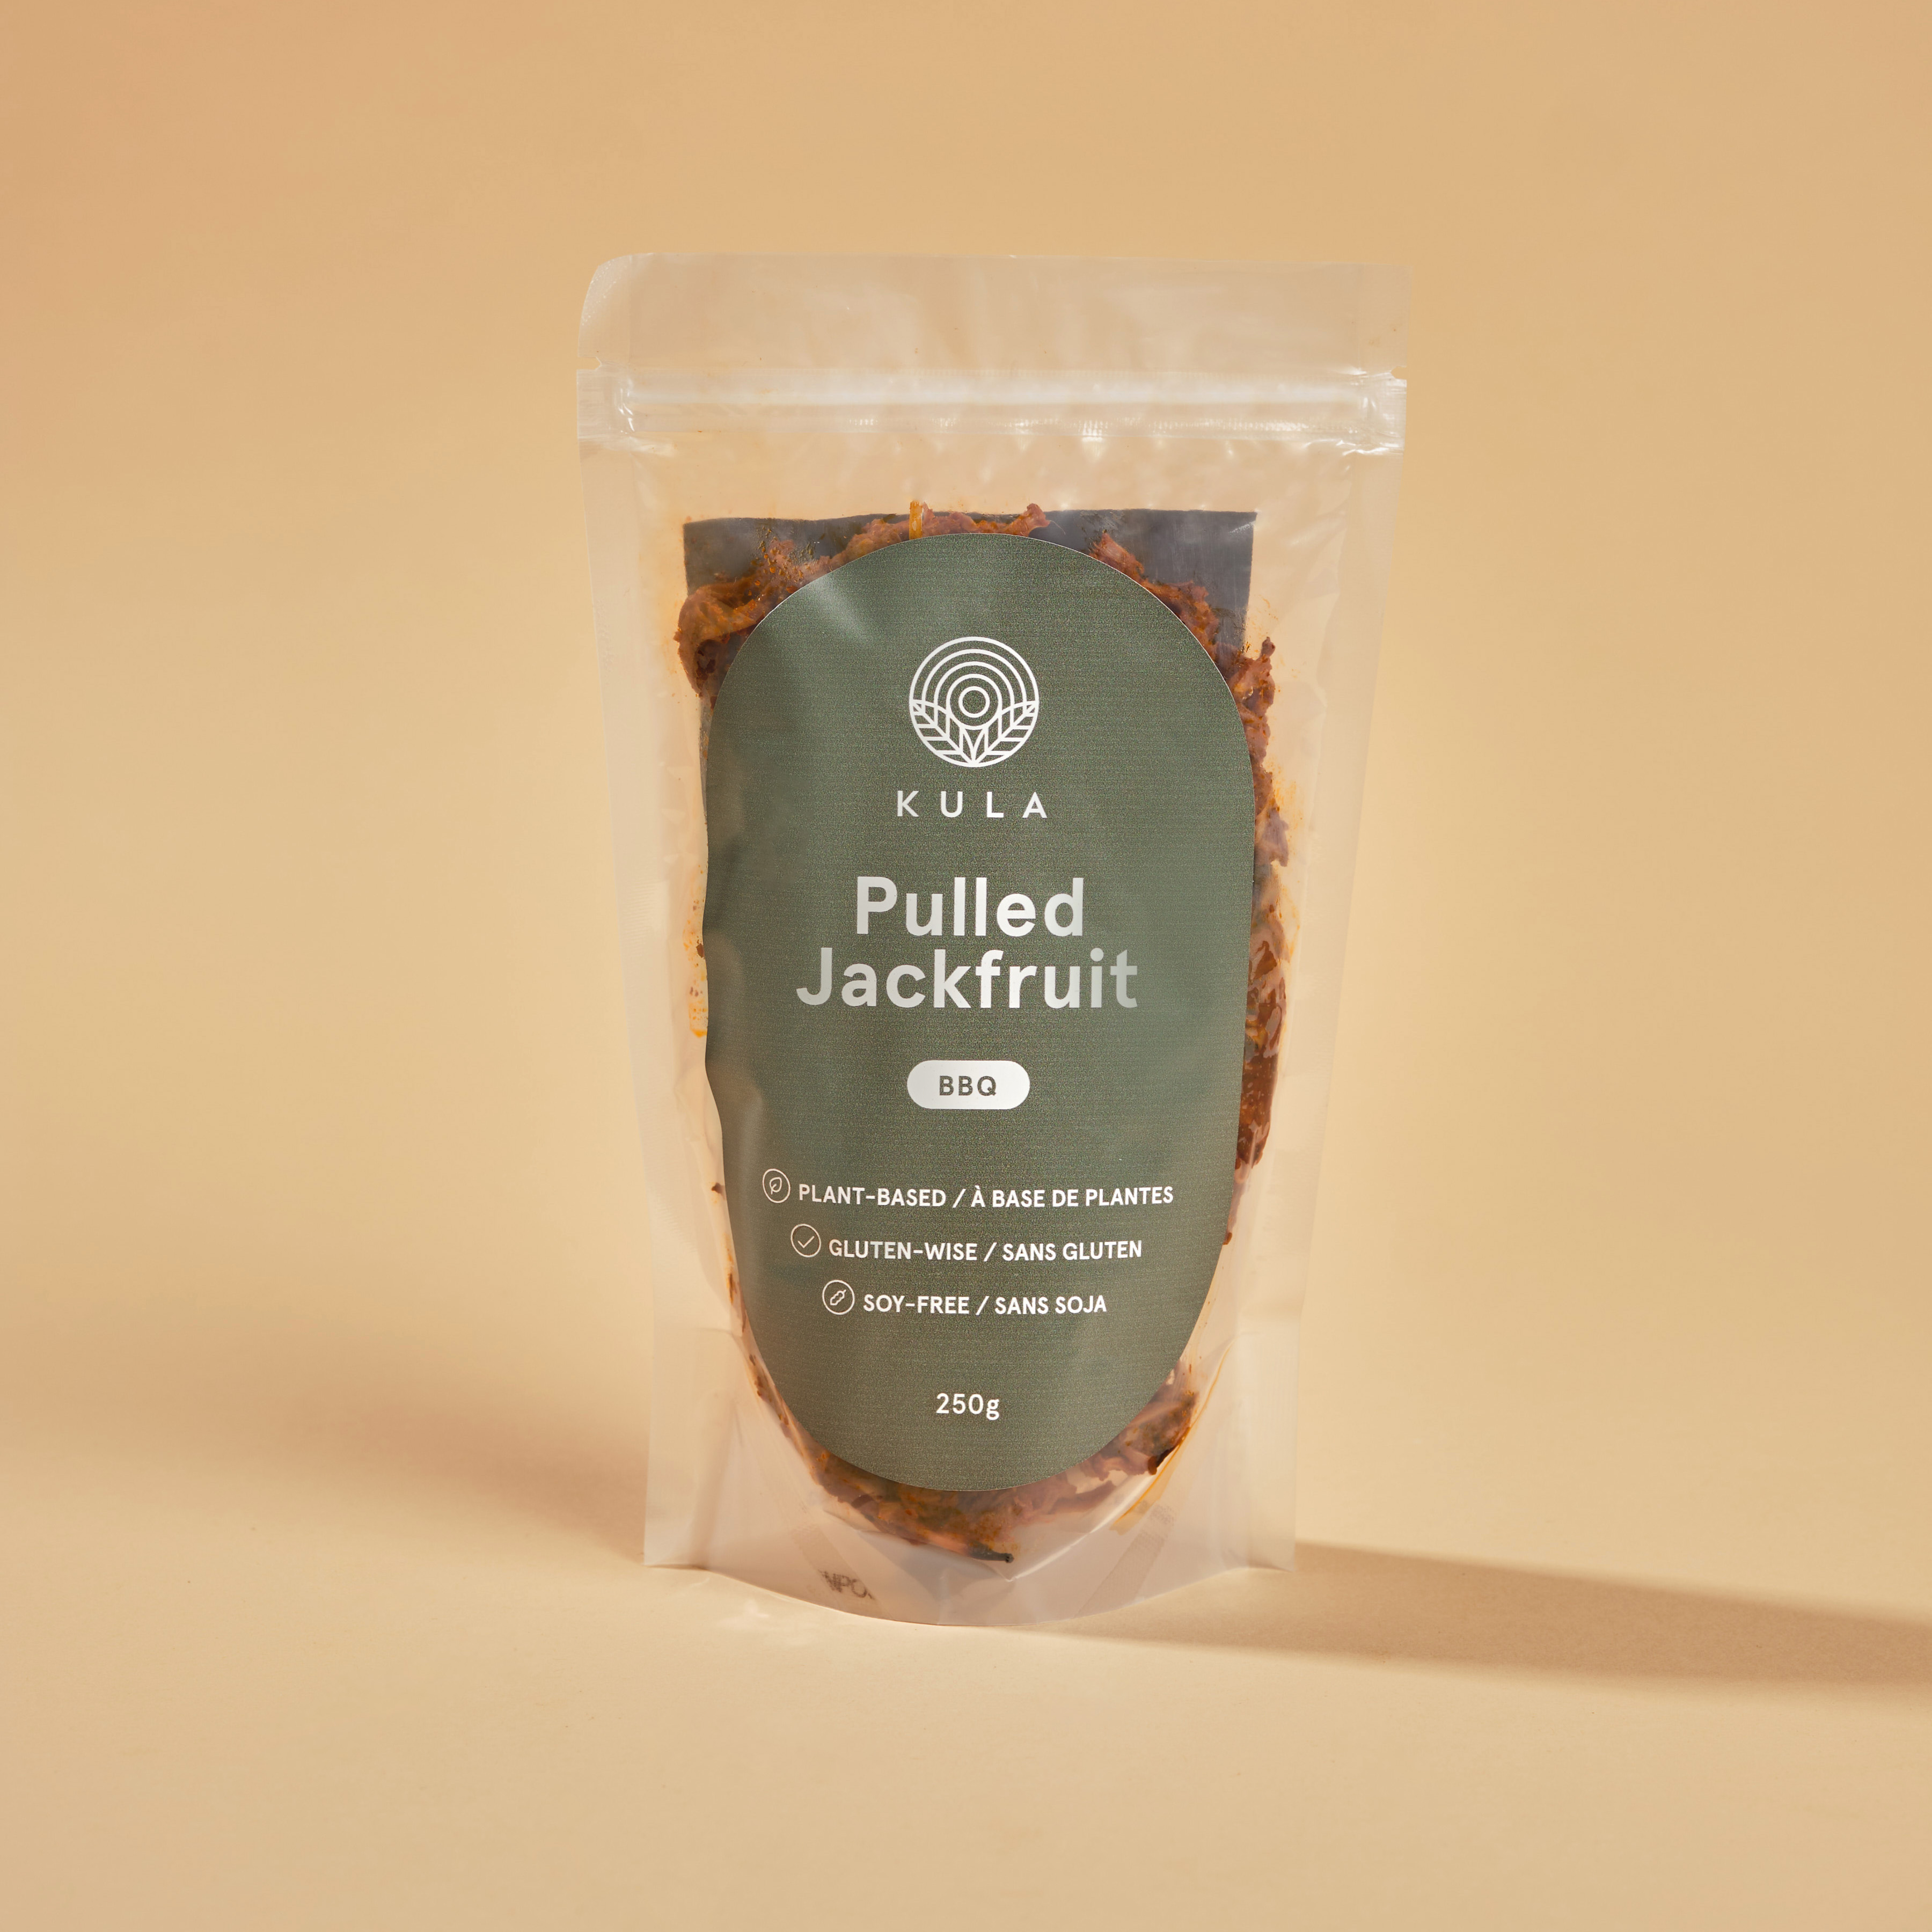 Transparent pouch packaging design made for Kula Kitchen's Pulled Jackfruit